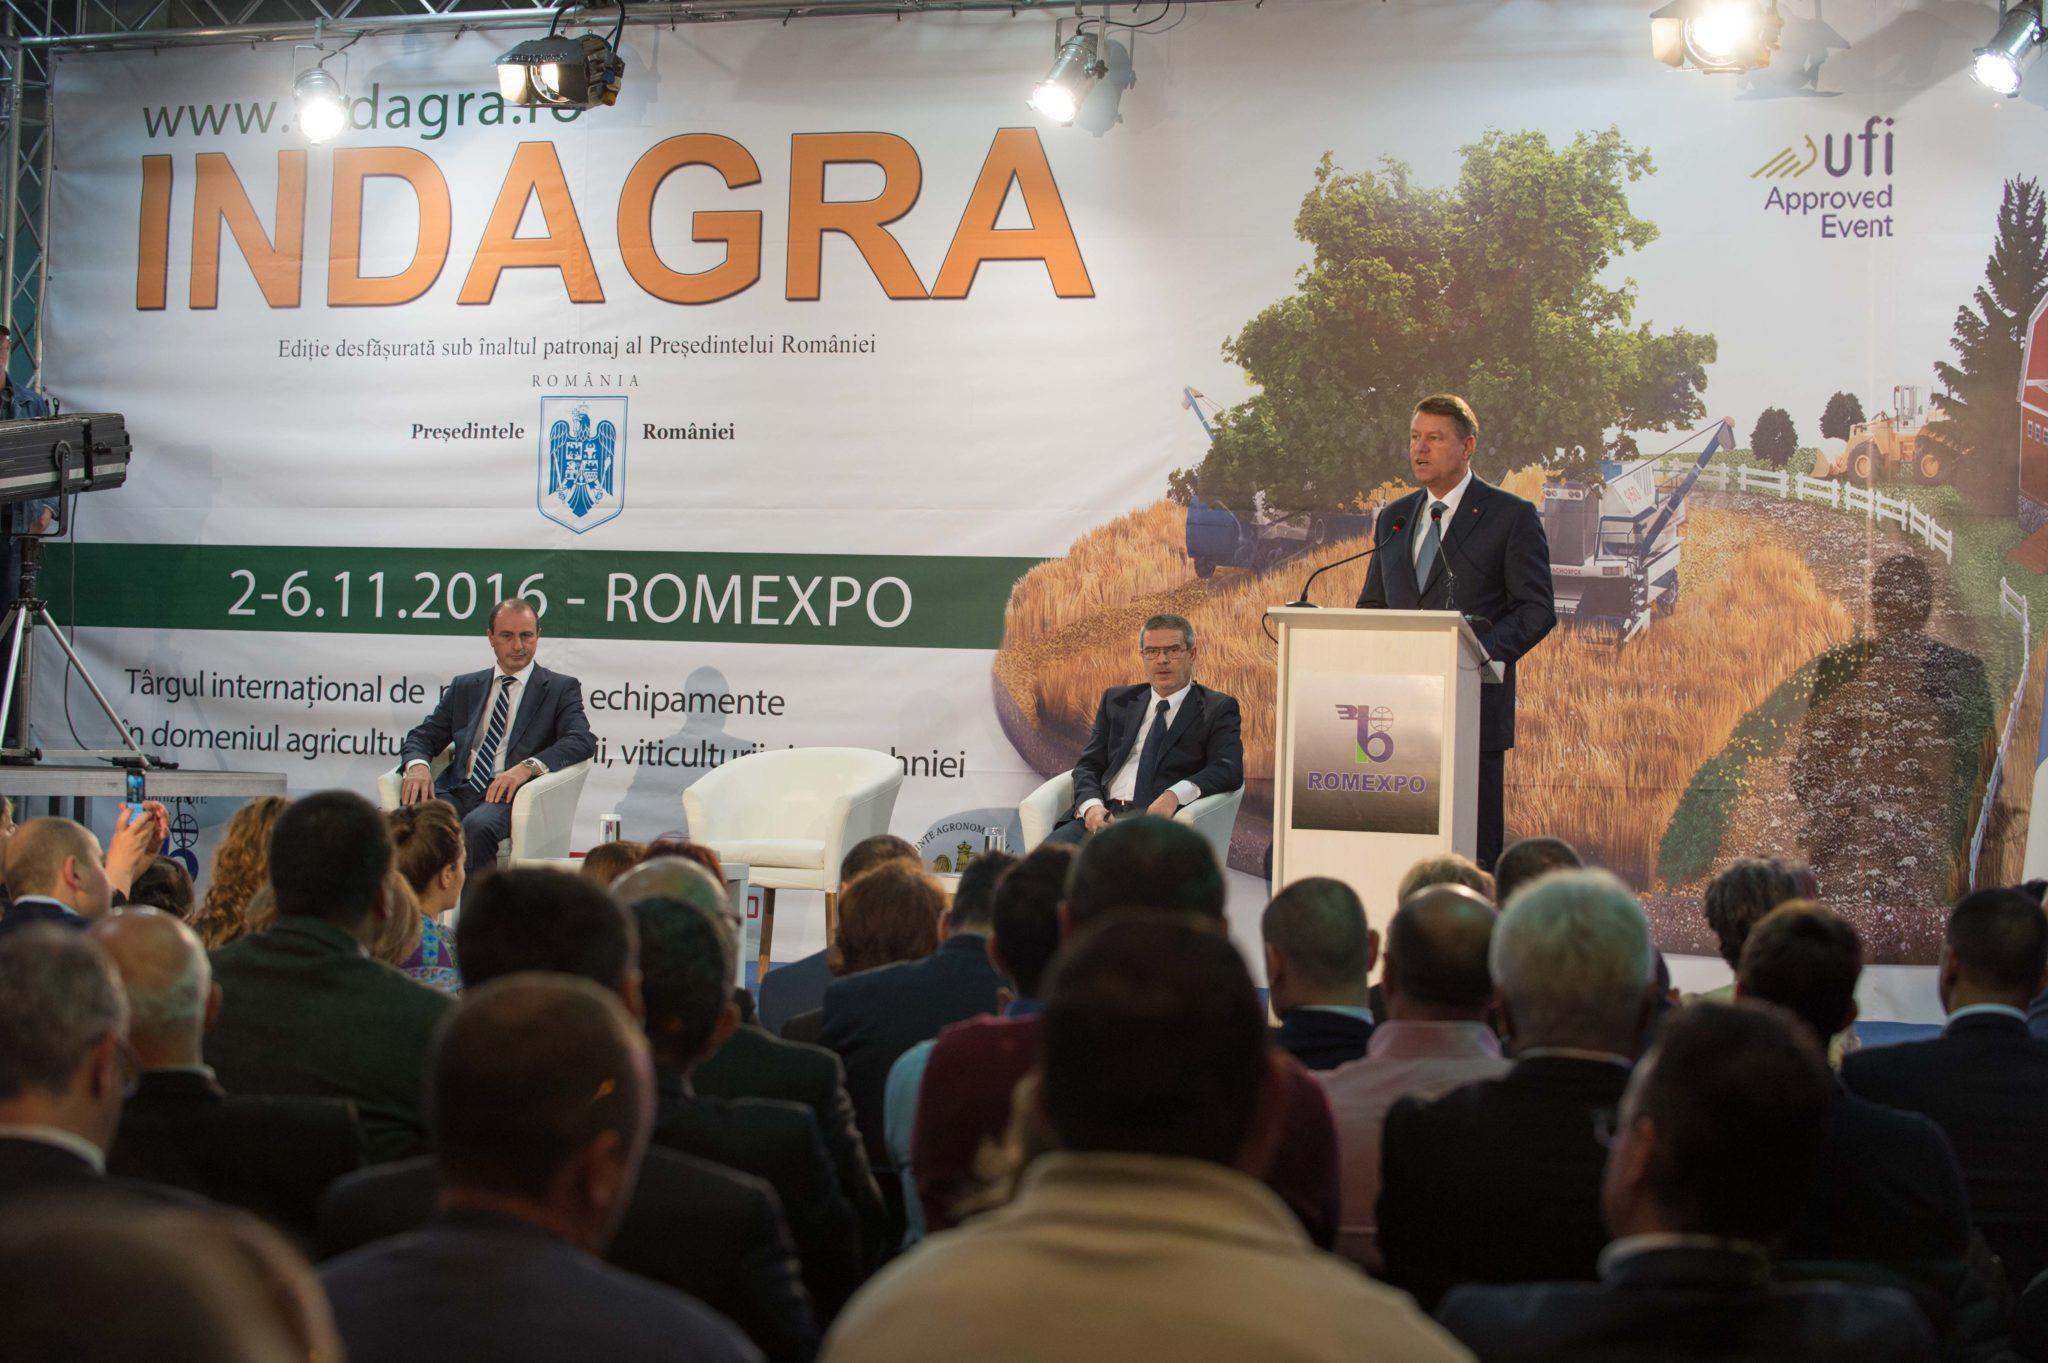 Eveniment INDAGRA 2016 Romexpo